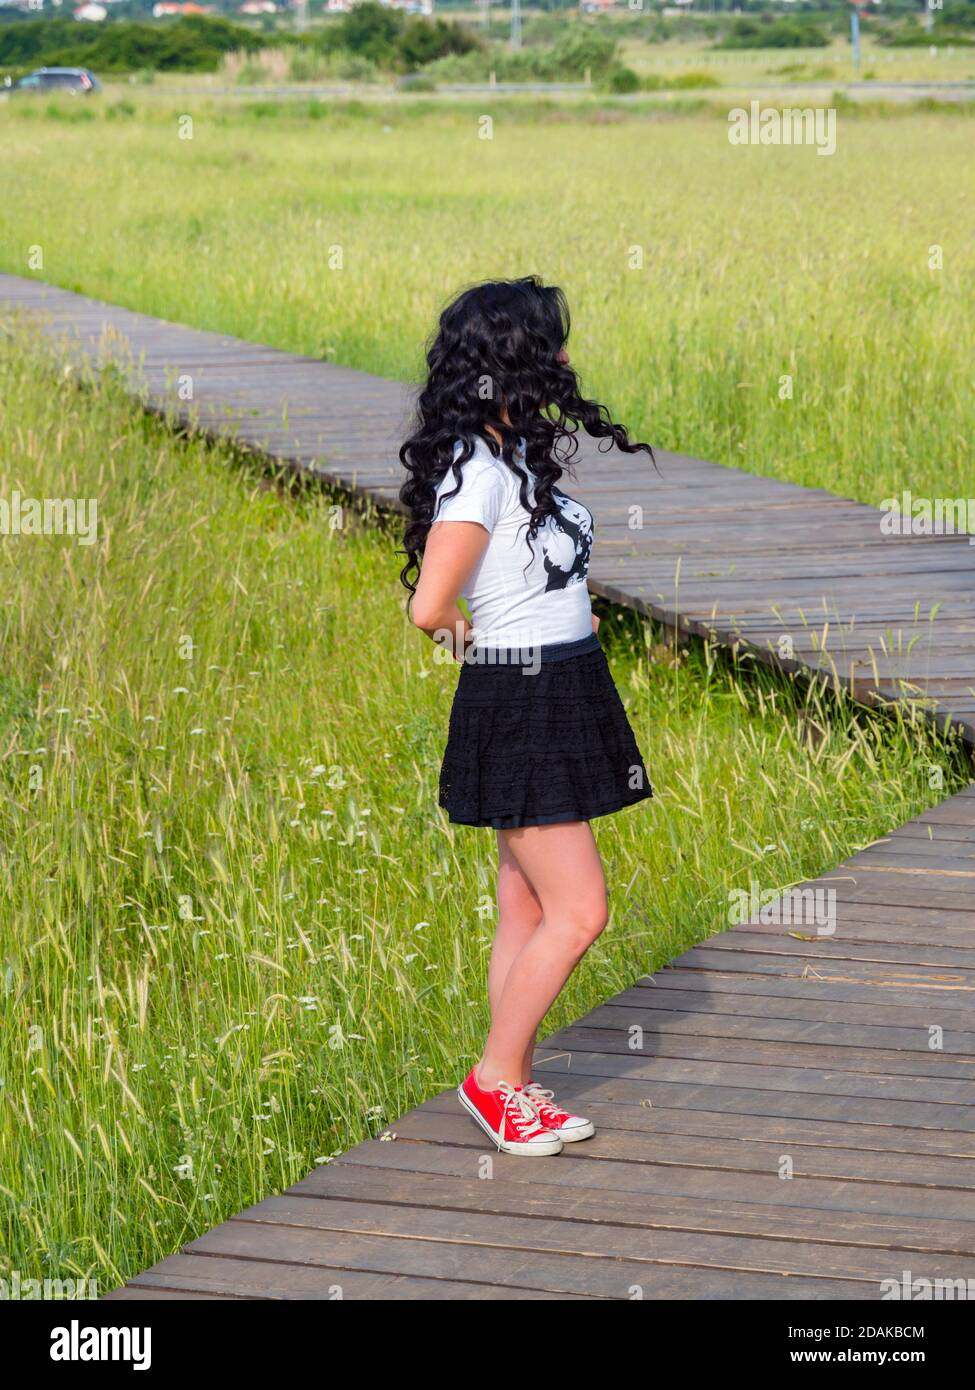 Young woman aka teen teenager standing in wooden walkway in nature looking away hidden identity obscured face anonymous nobody waiting wait hands back Stock Photo